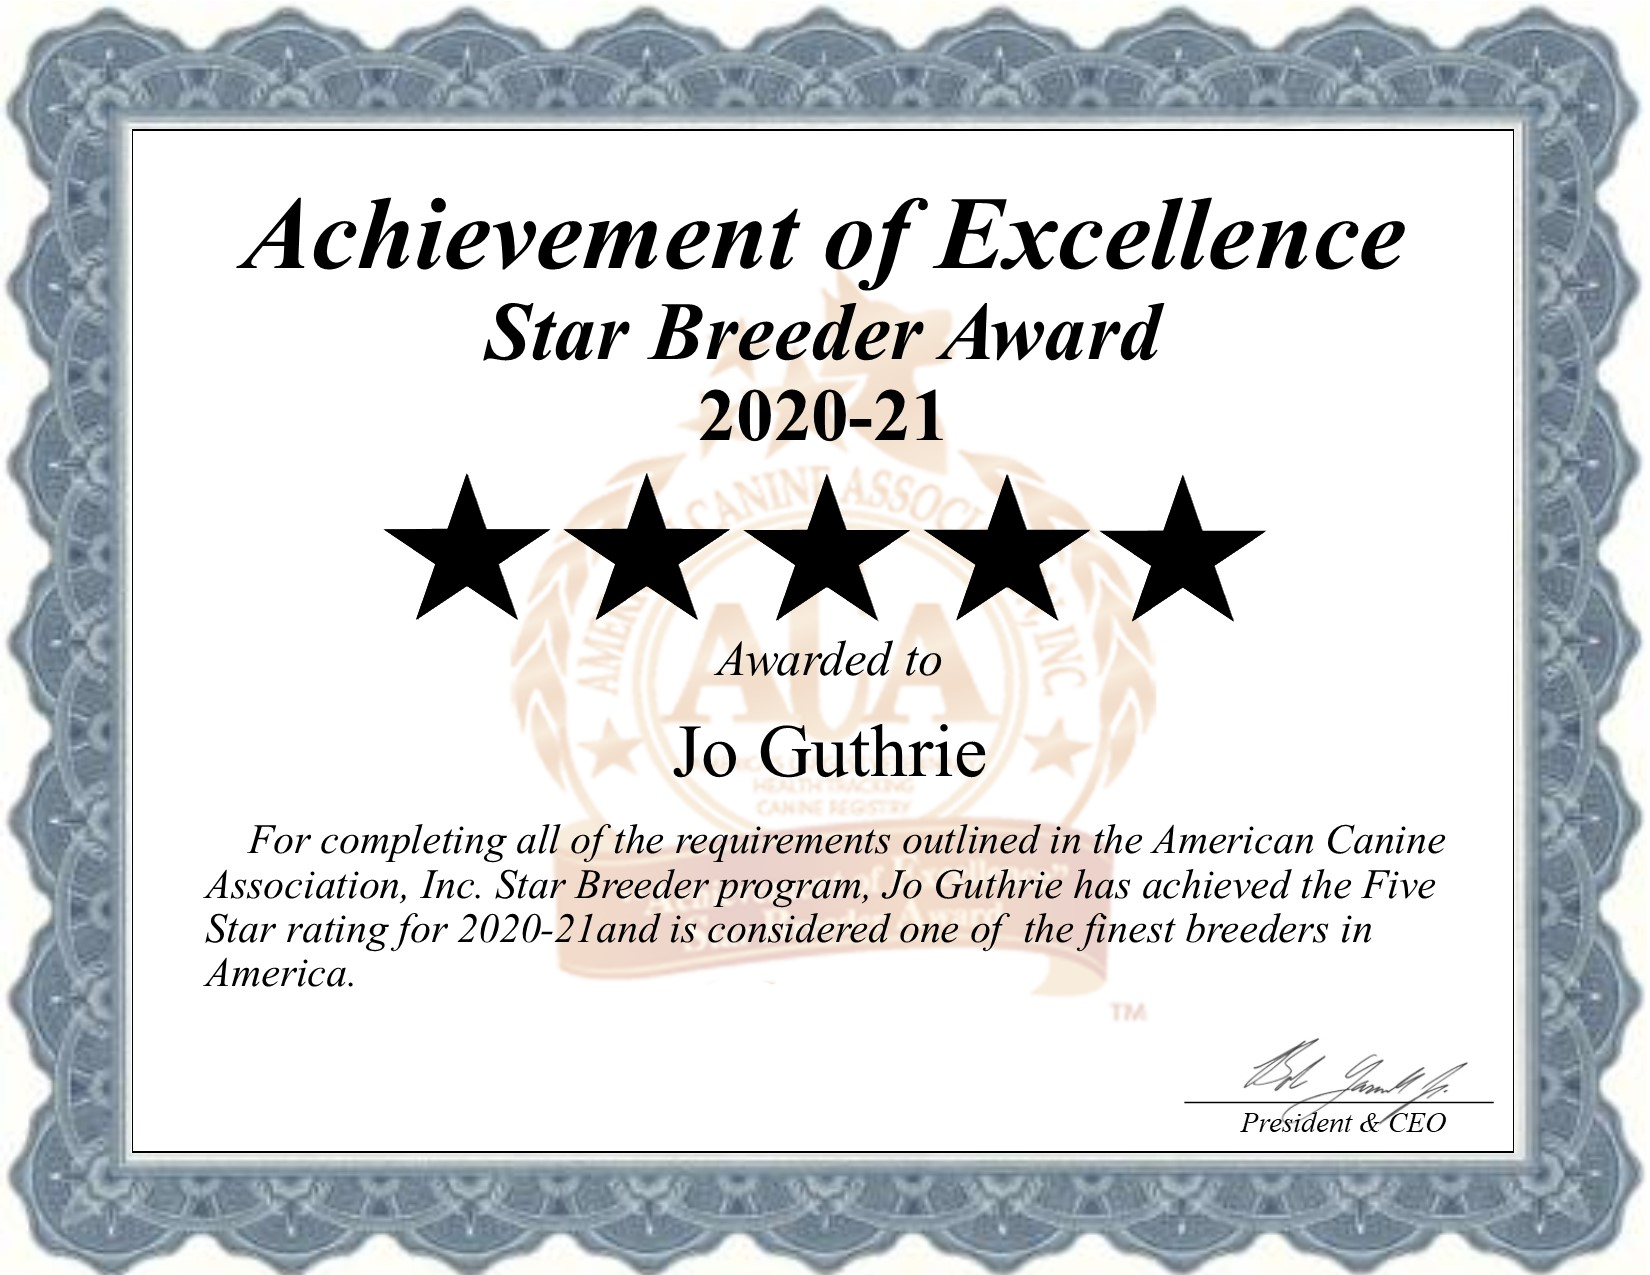 Jo, Guthrie, dog, breeder, star, certificate, Jo-Guthrie, Canton, TX, Texas, puppy, dog, kennels, mill, puppymill, usda, 5-star, aca, ica, registered, mini-daschund, dacshund, license, 112